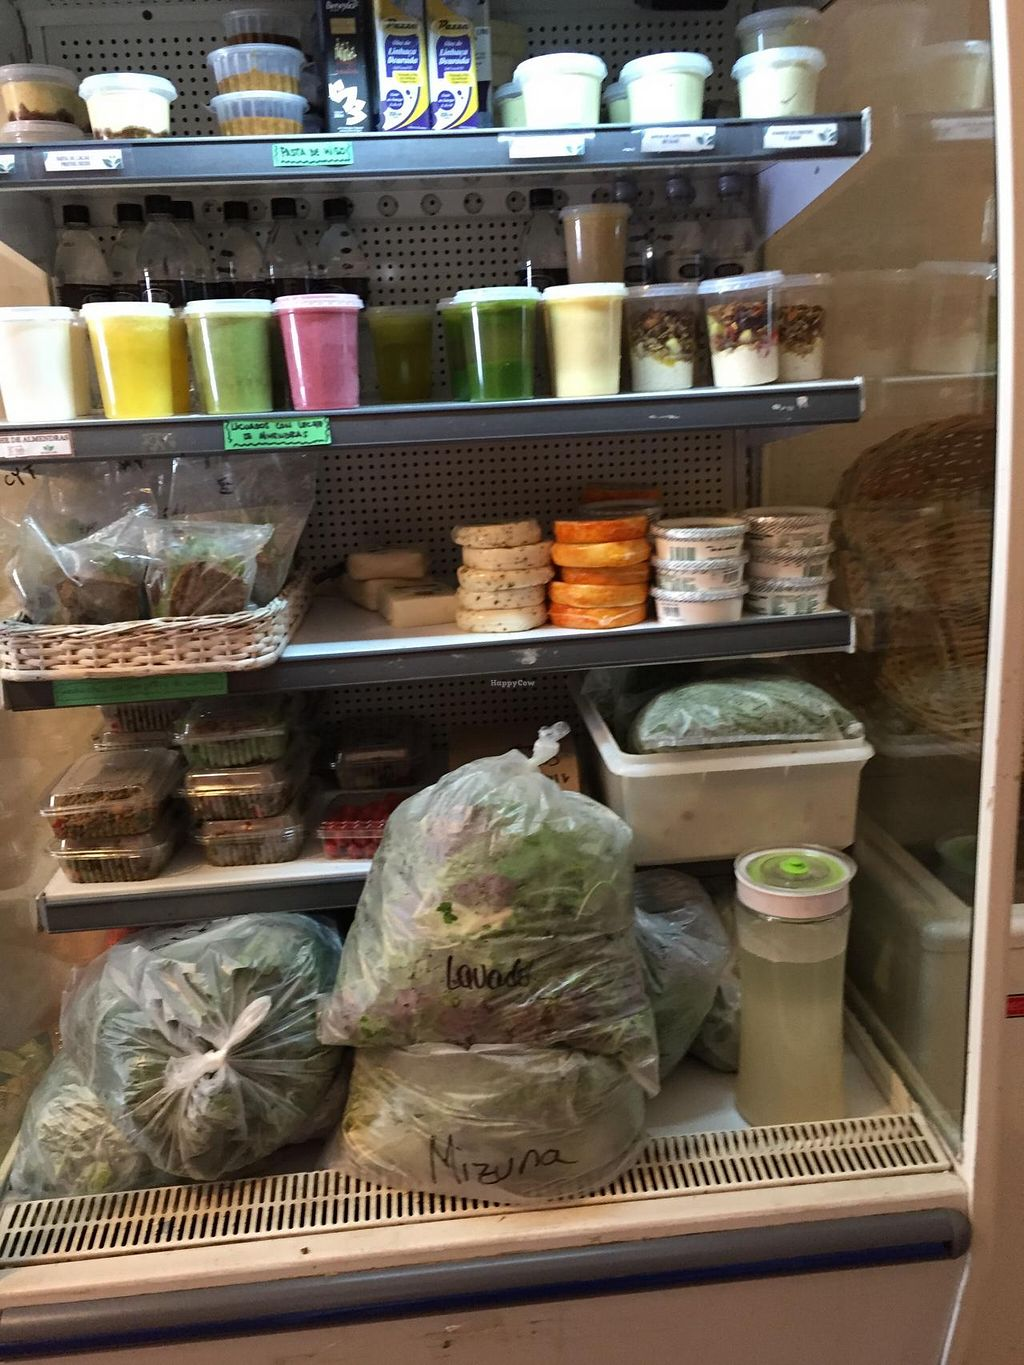 """Photo of Mercado Verde  by <a href=""""/members/profile/cuckooworld"""">cuckooworld</a> <br/>Fridge with ready vegetable drinks and other cold produce <br/> February 20, 2015  - <a href='/contact/abuse/image/44537/93596'>Report</a>"""